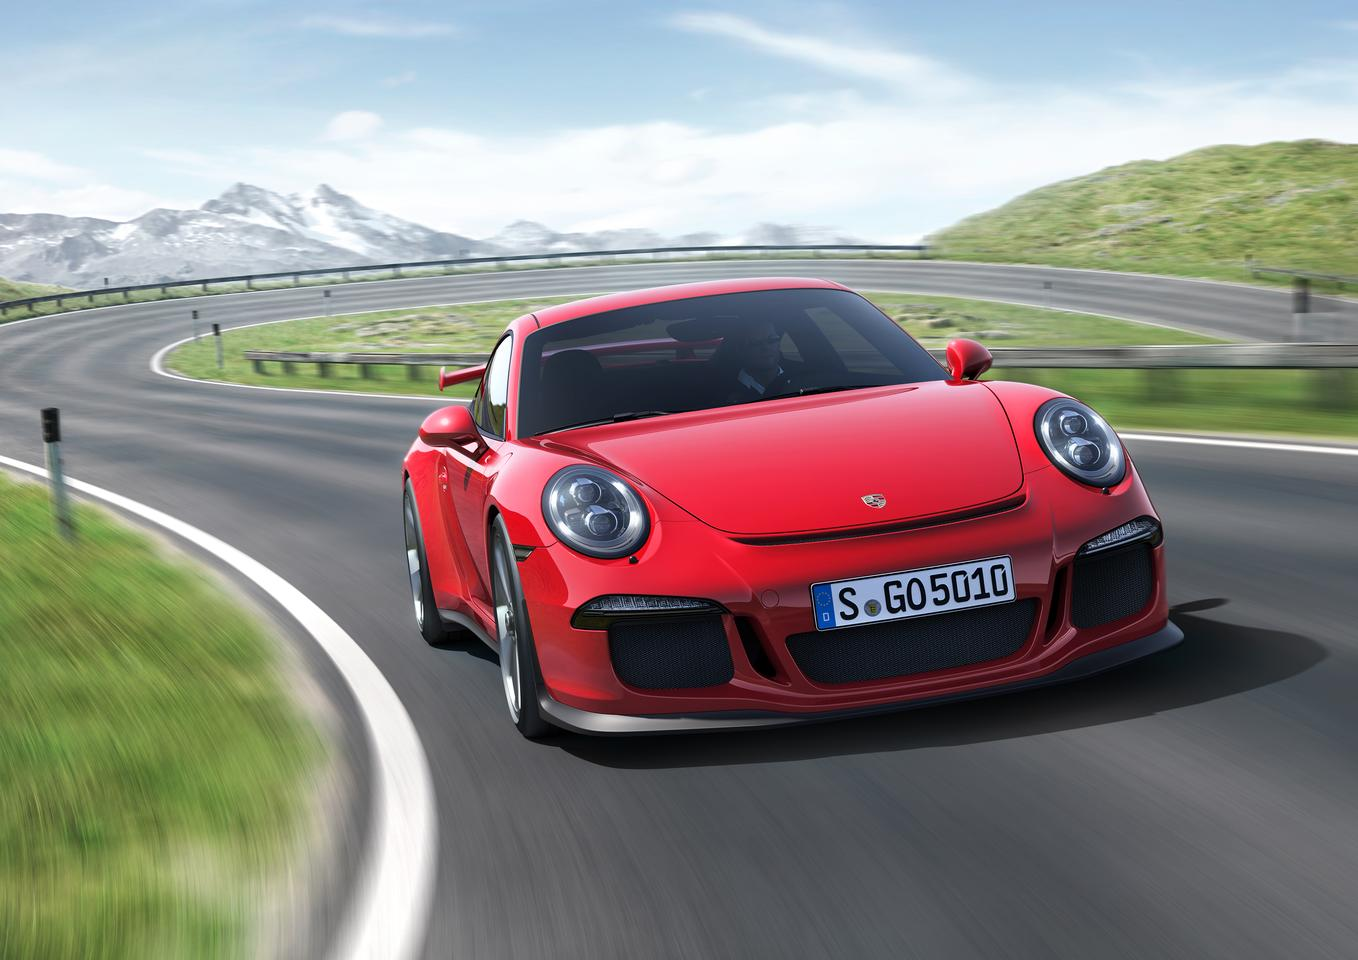 The GT3 gets a new dual-clutch gearbox (PDK) with shorter gear ratios, spaced closer together, and shorter throw shift paddles